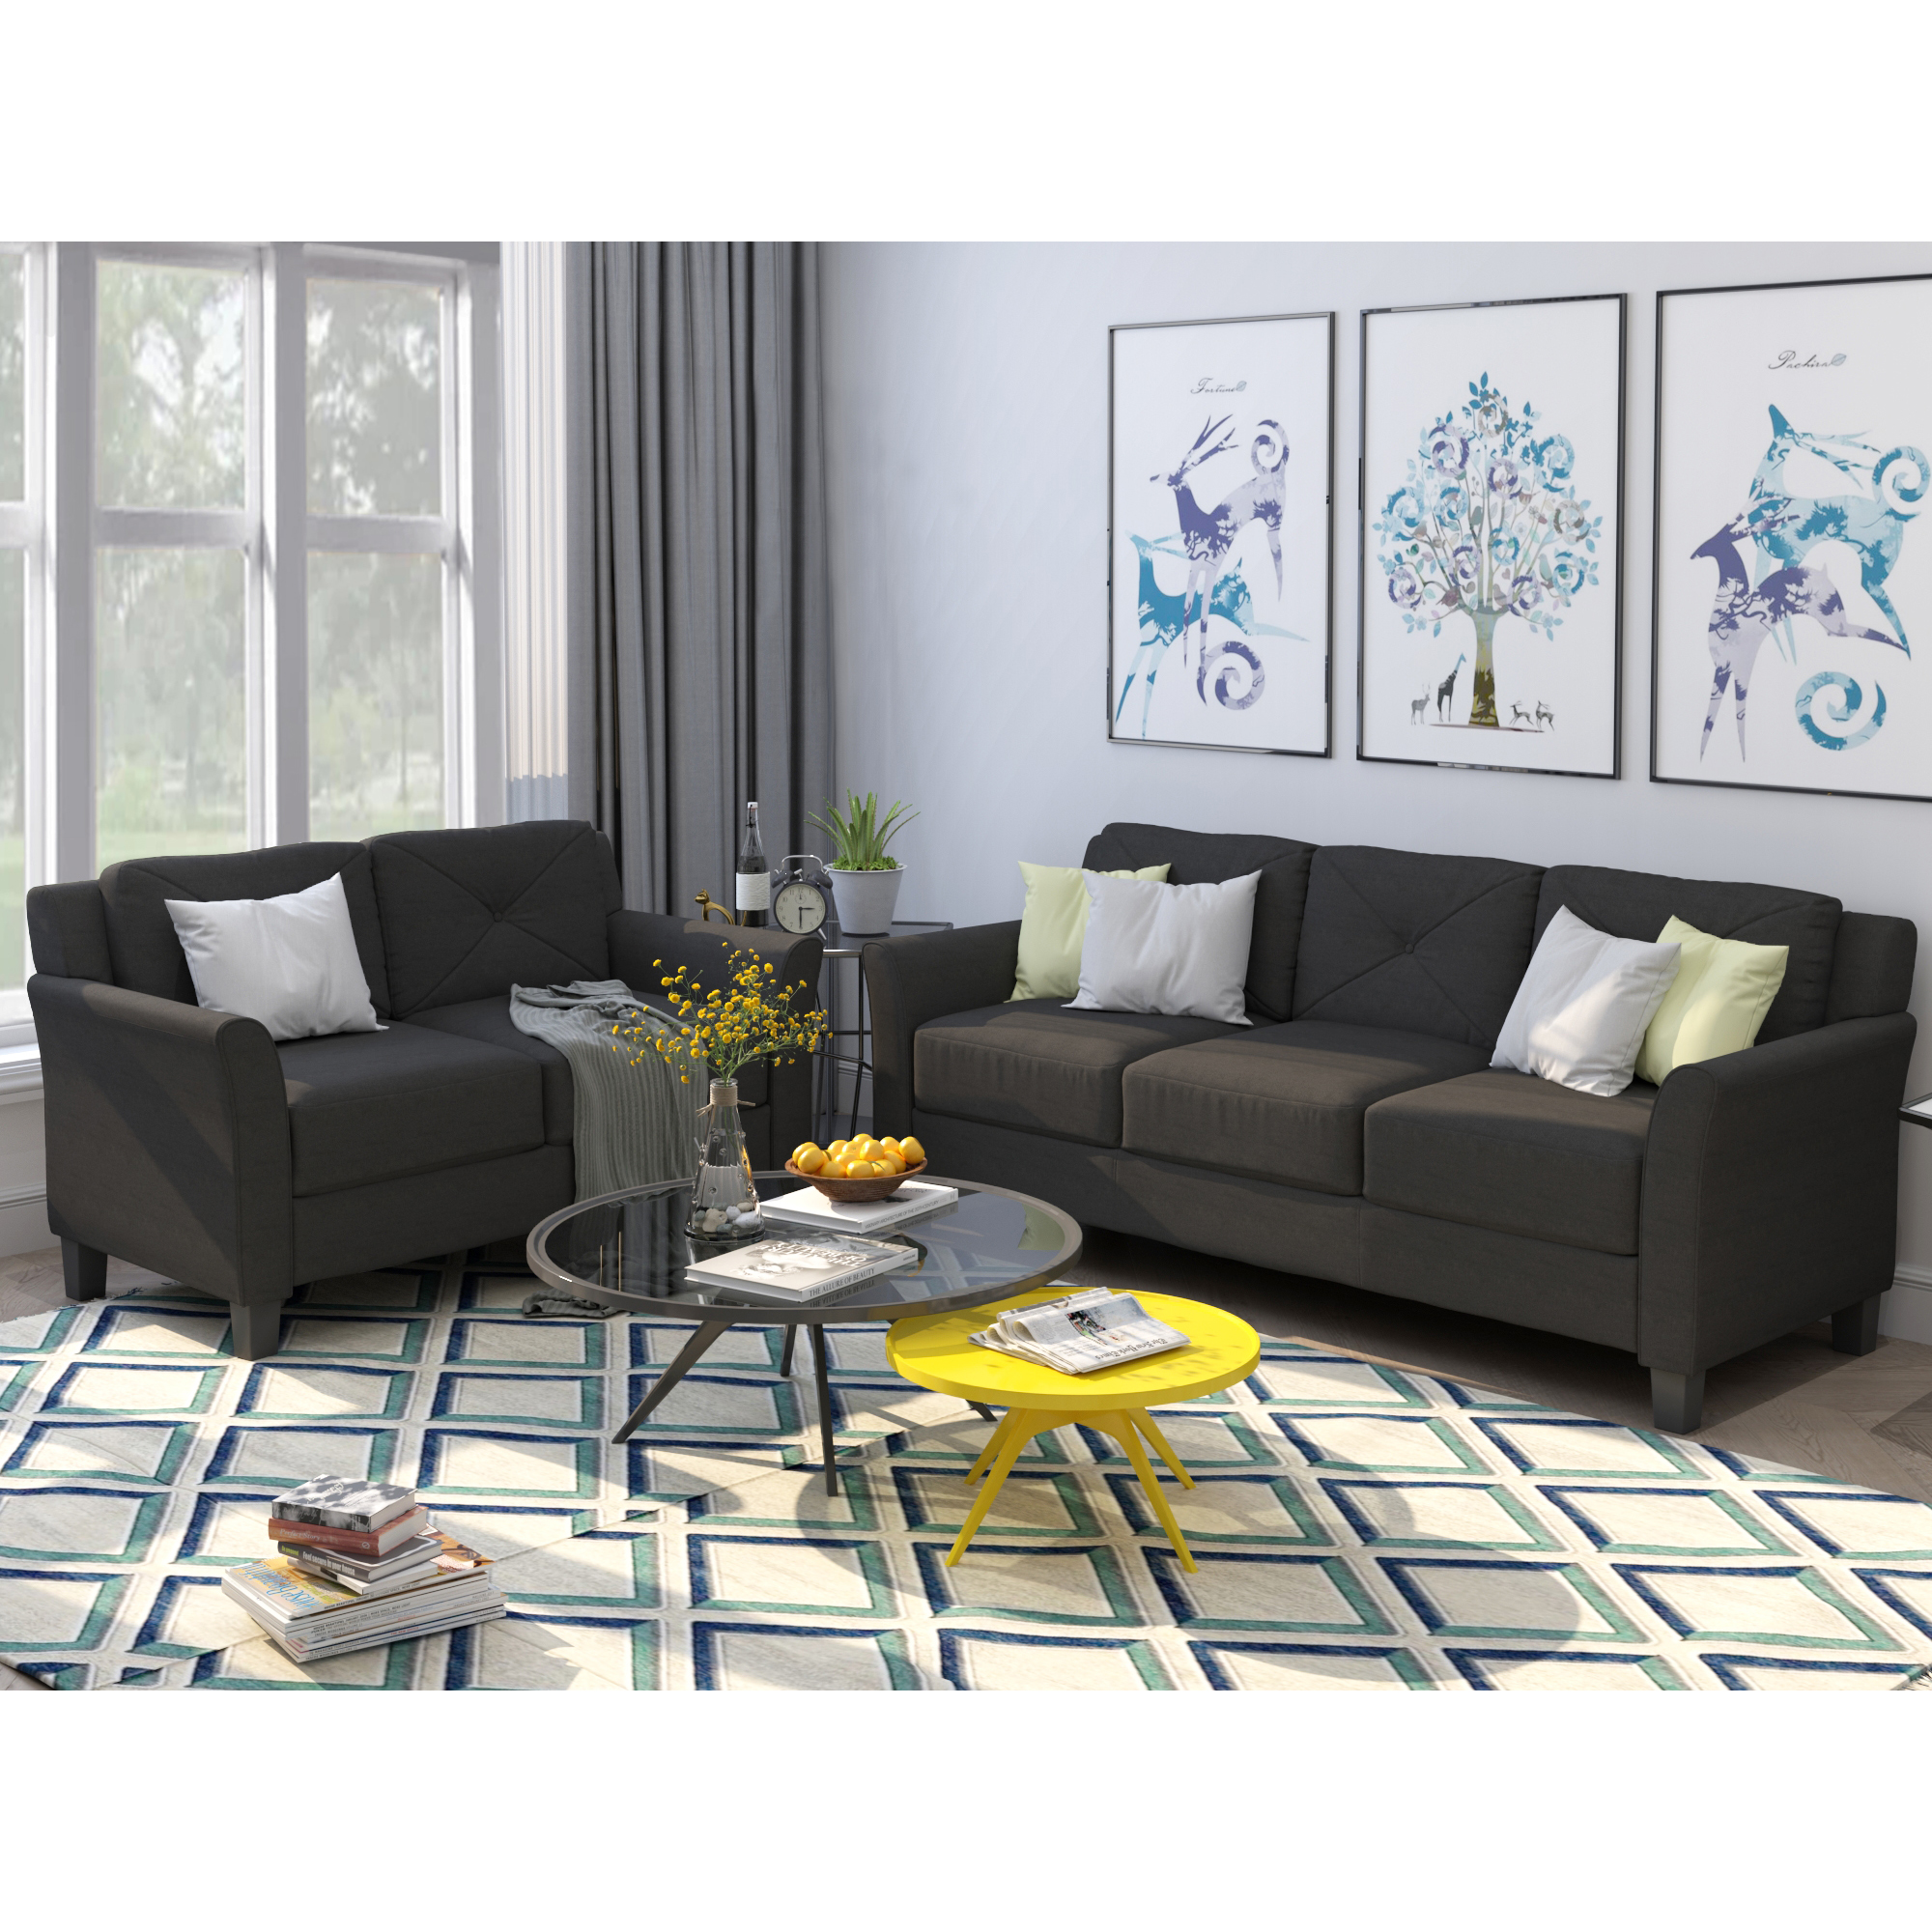 Clearance Upholstered Sofas Couches